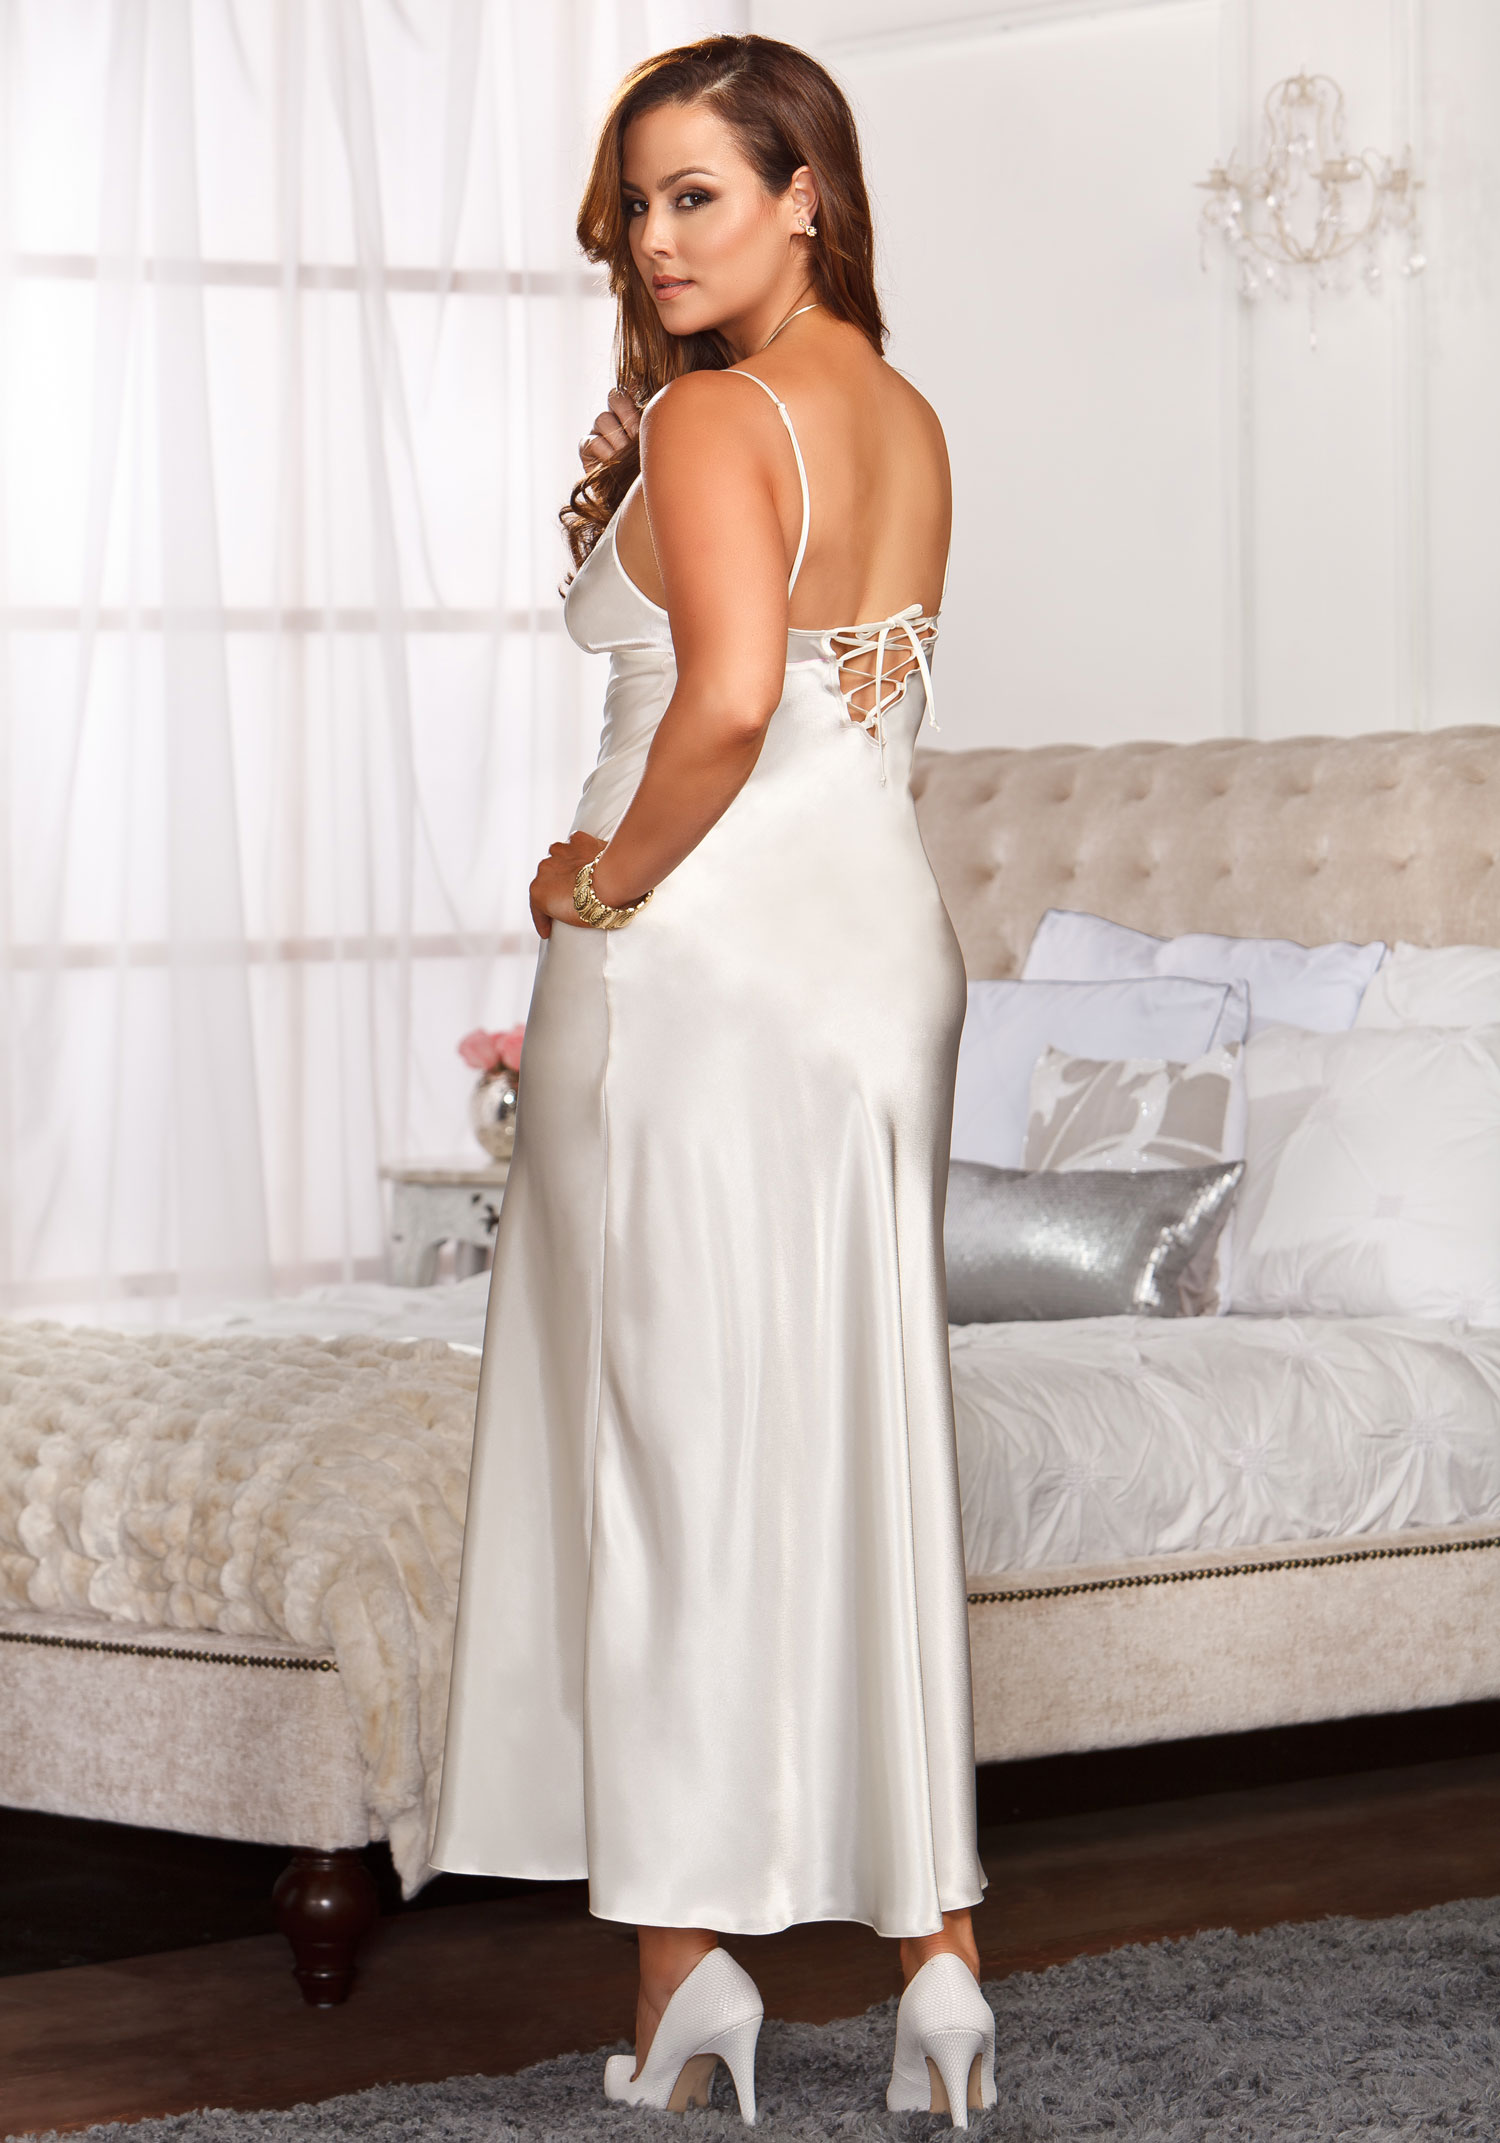 iCollection Lingerie 7801X Plus Size Long Lace Trimmed Satin Gown